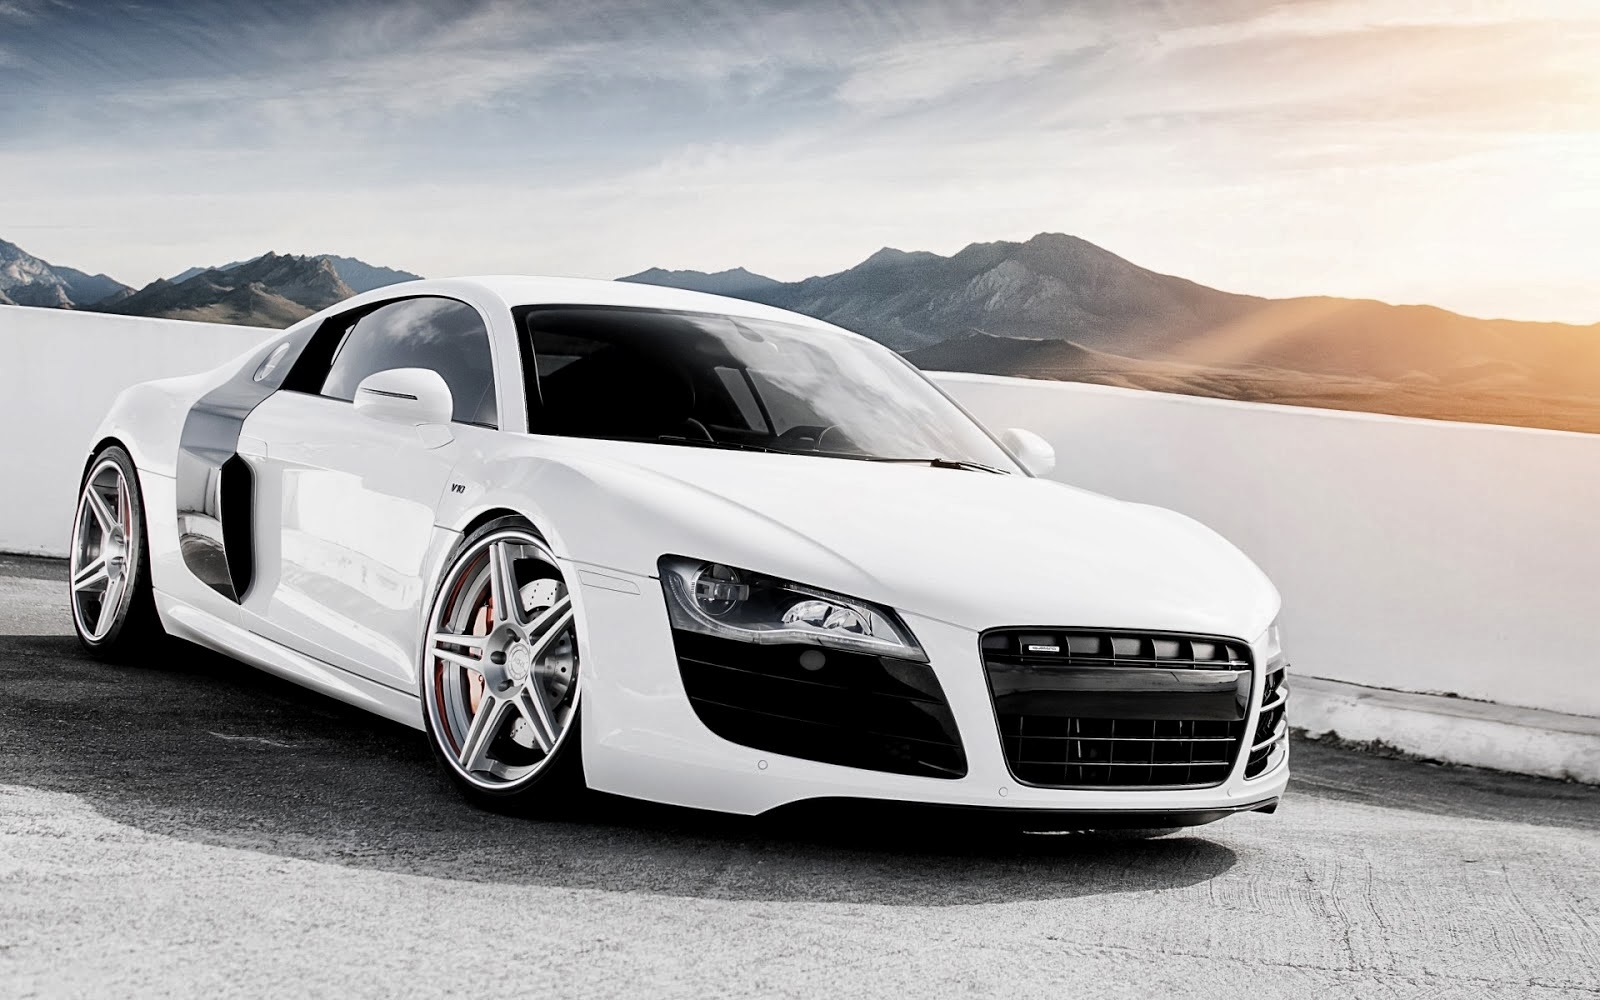 audi r8 hd wallpapers free hd wallpapers. Black Bedroom Furniture Sets. Home Design Ideas